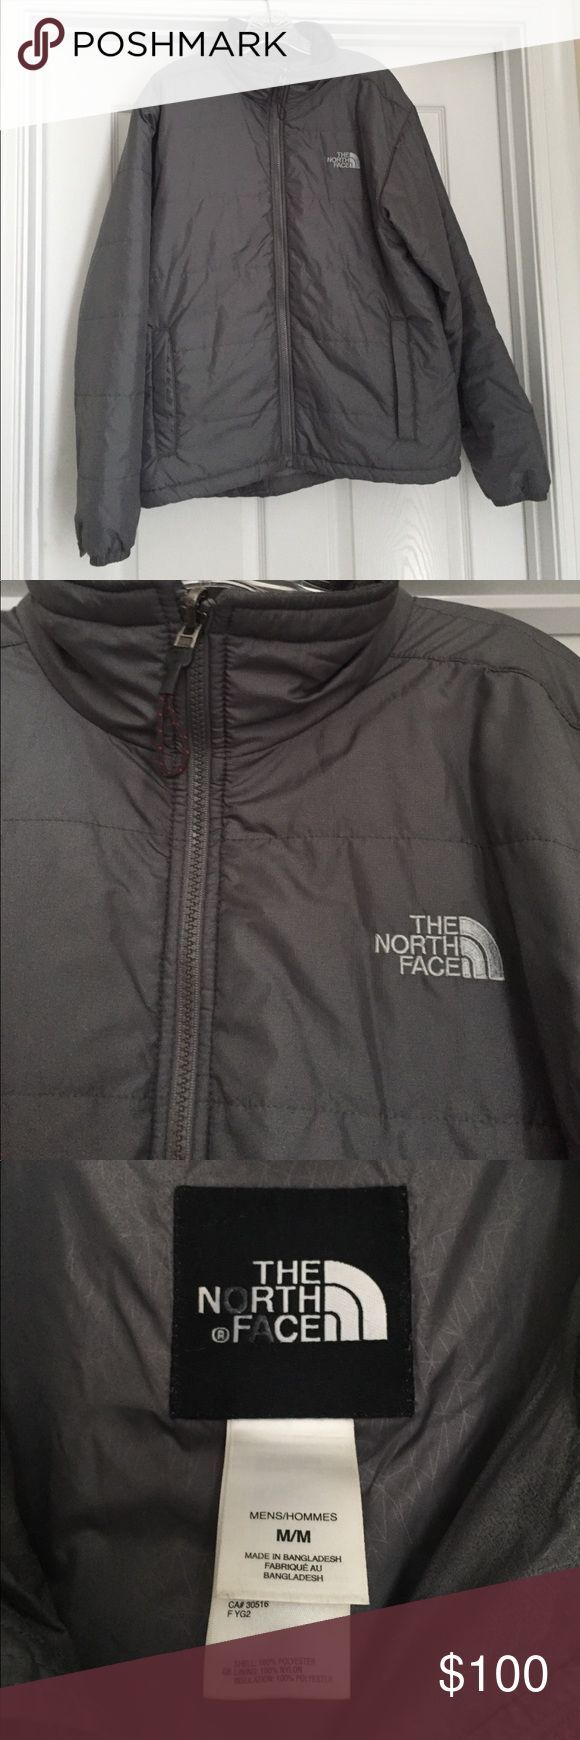 Men's North Face light puffer jacket Men's North Face lightweight puffer jacket, size medium. Greta gray color that never goes out of style! Bought at the outlet a few years ago but my husband has only worn it a handful of time since it does not get cold where we live. Only sign of wear is on the button loop at he end of the sleeves (see last photo). North Face Jackets & Coats Puffers